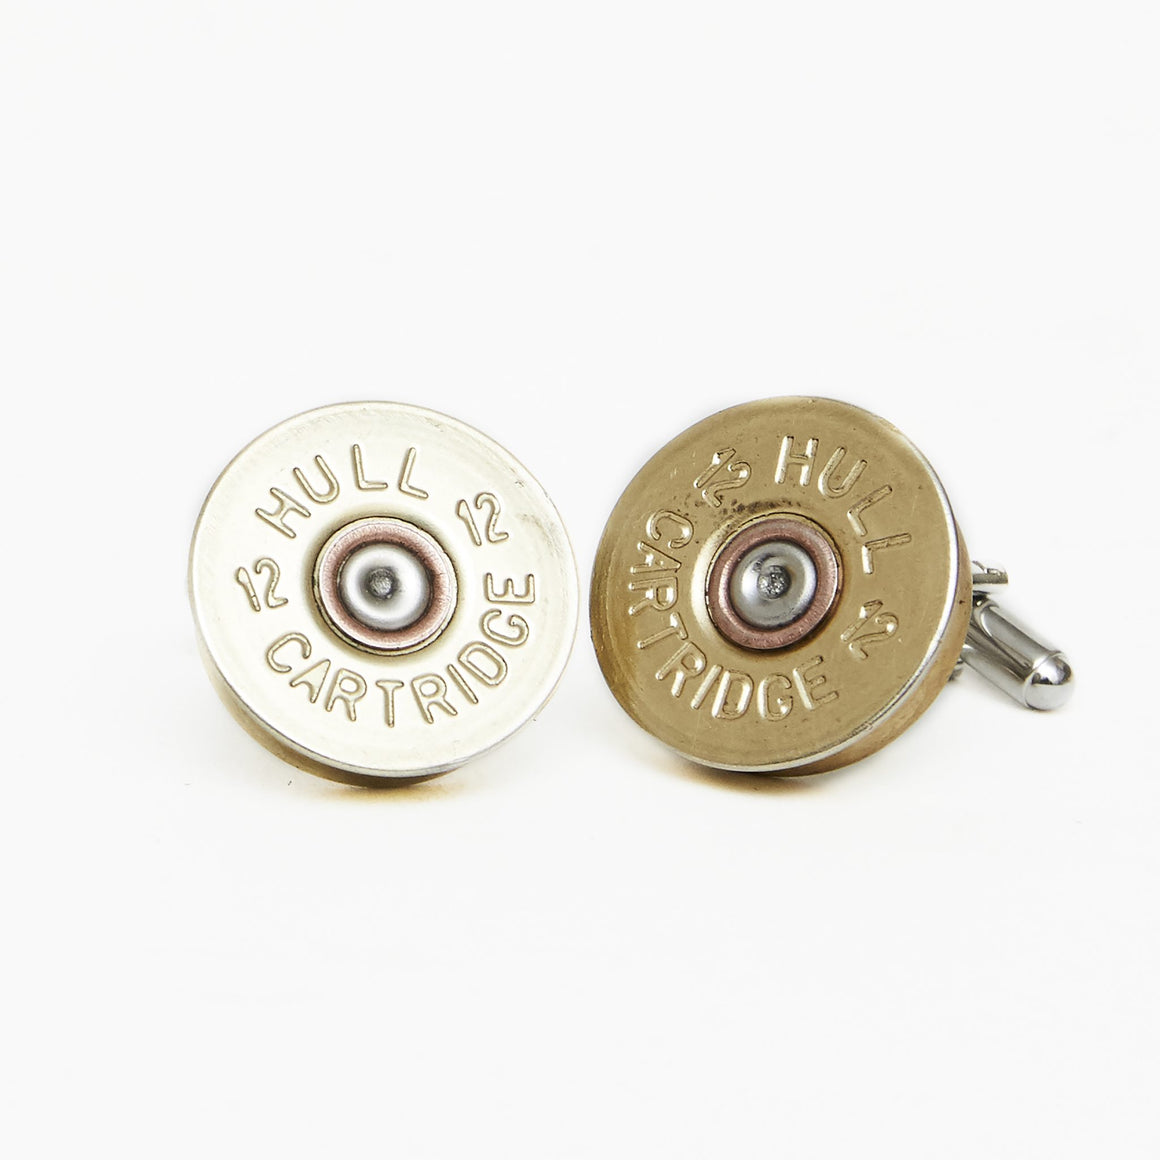 Hicks & Hide 12bore Cufflinks Brass